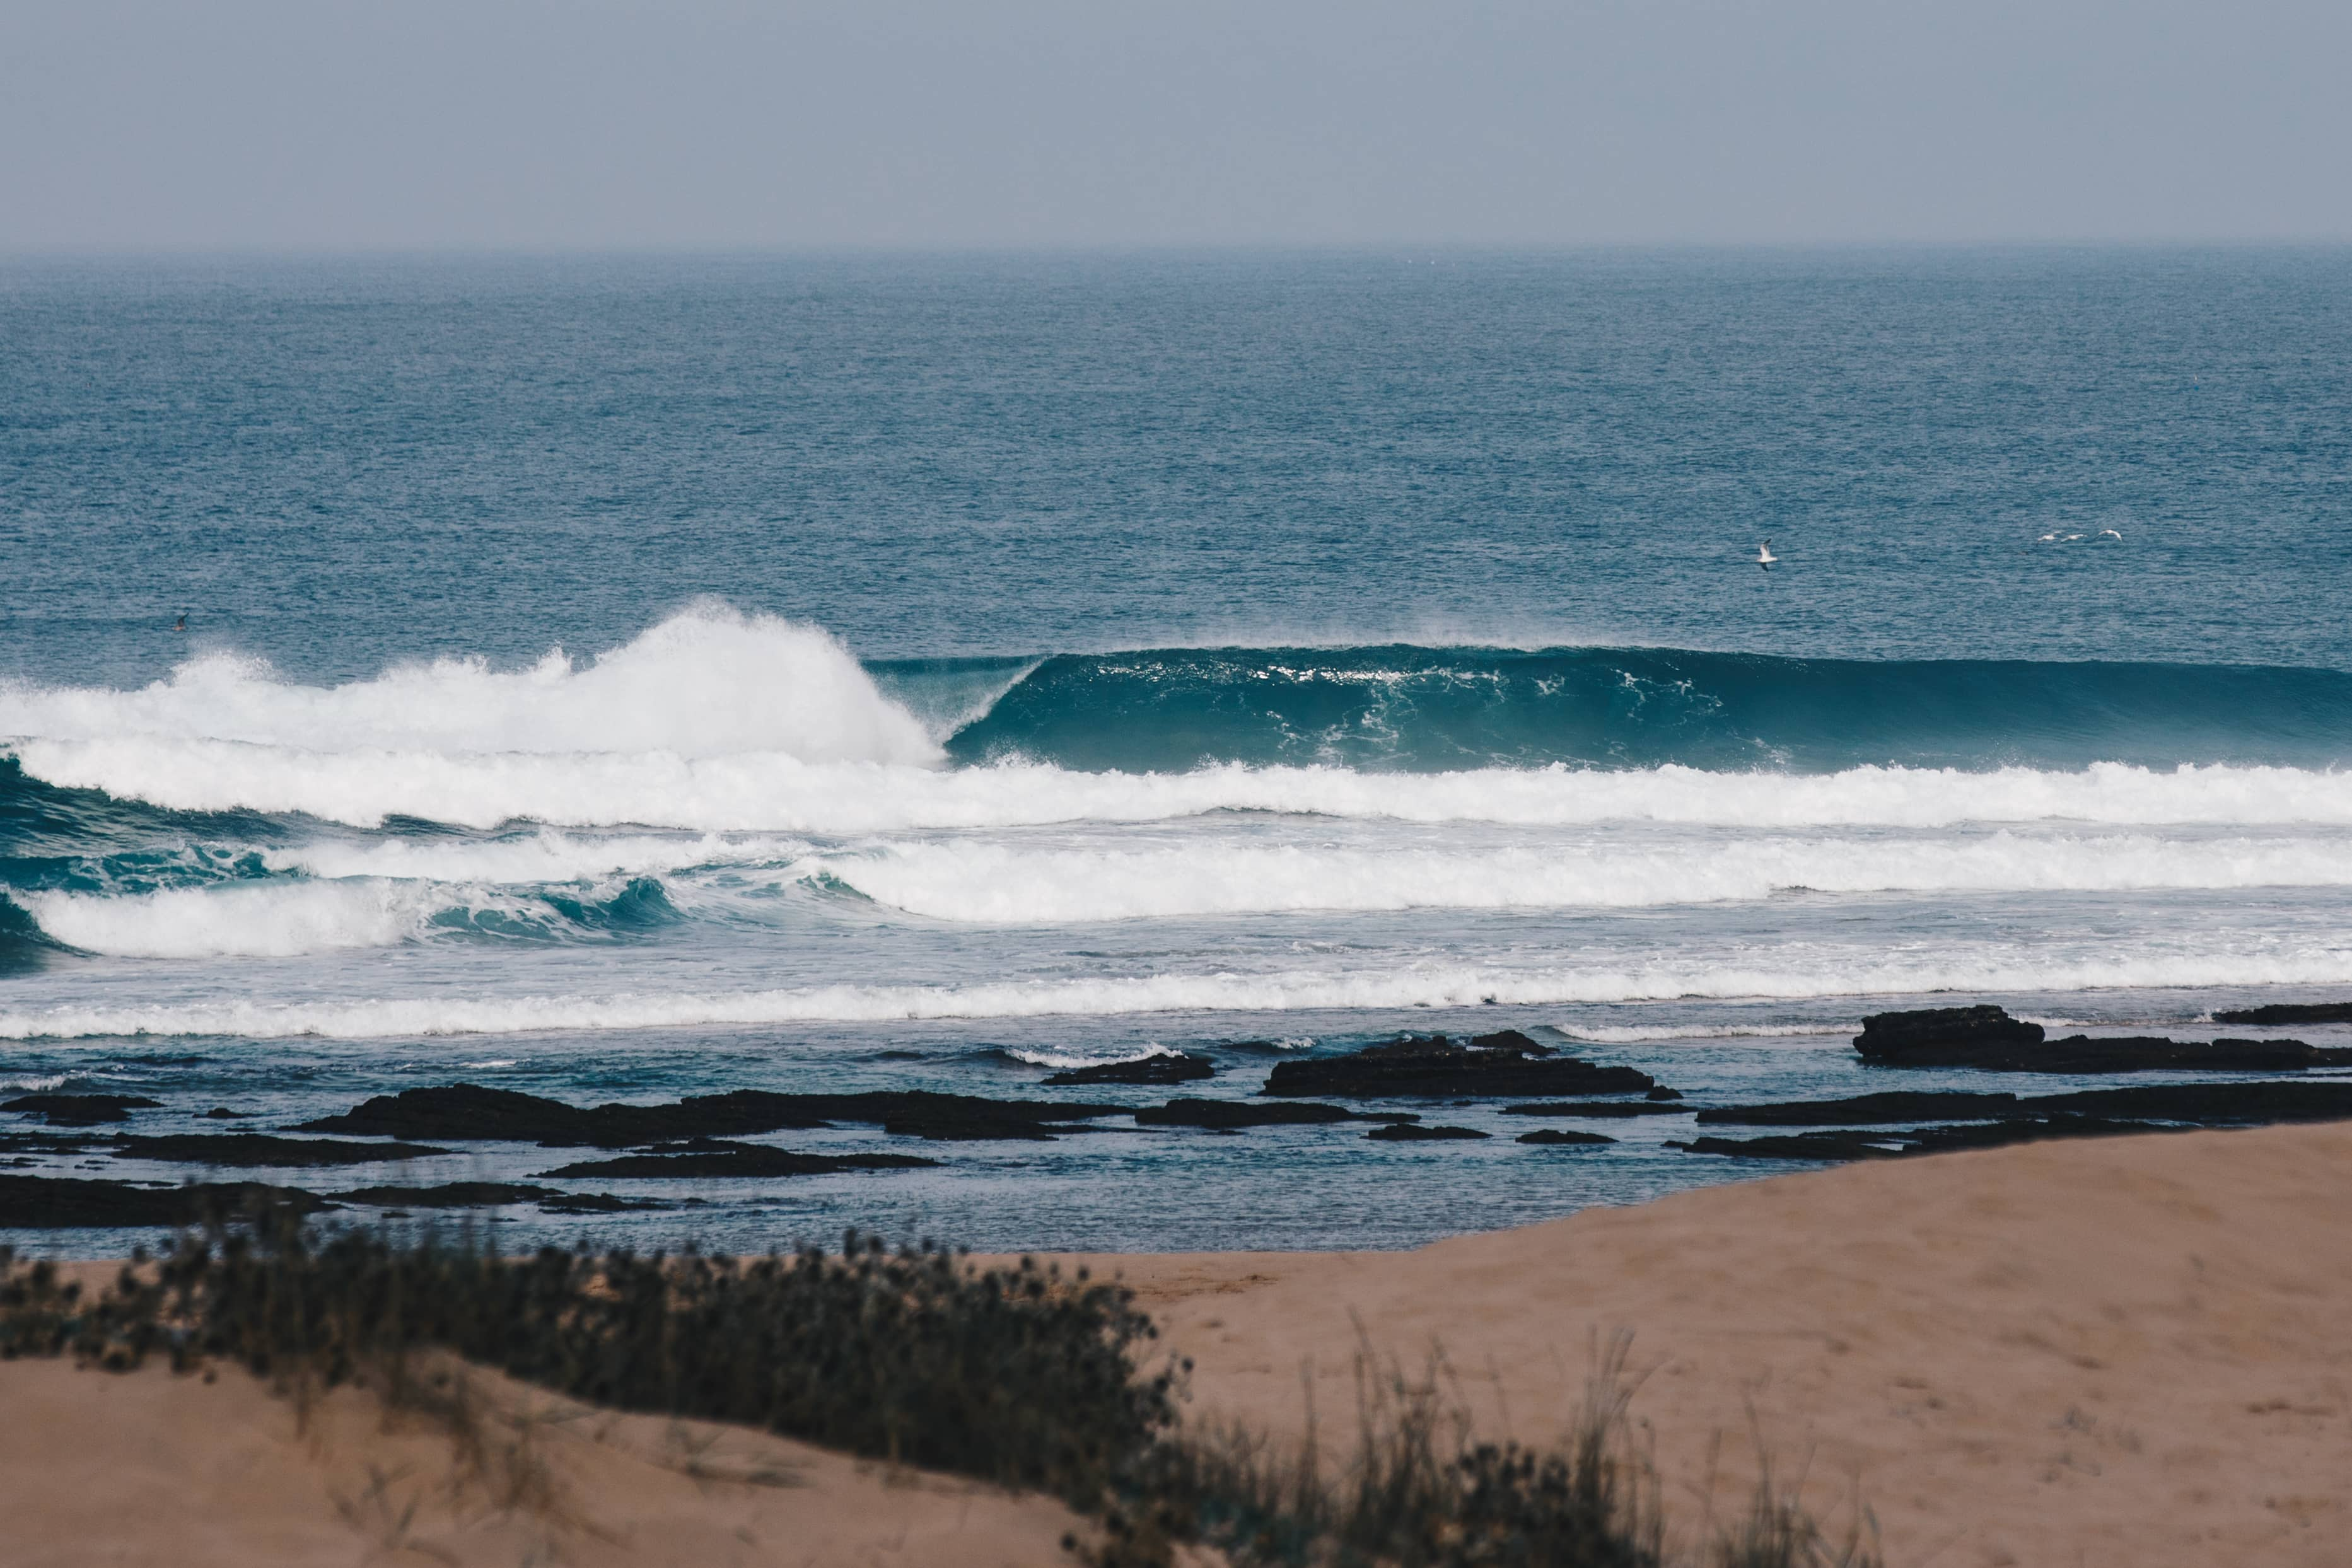 Perfect left wave last Autumn in the South of Portugal Algarve